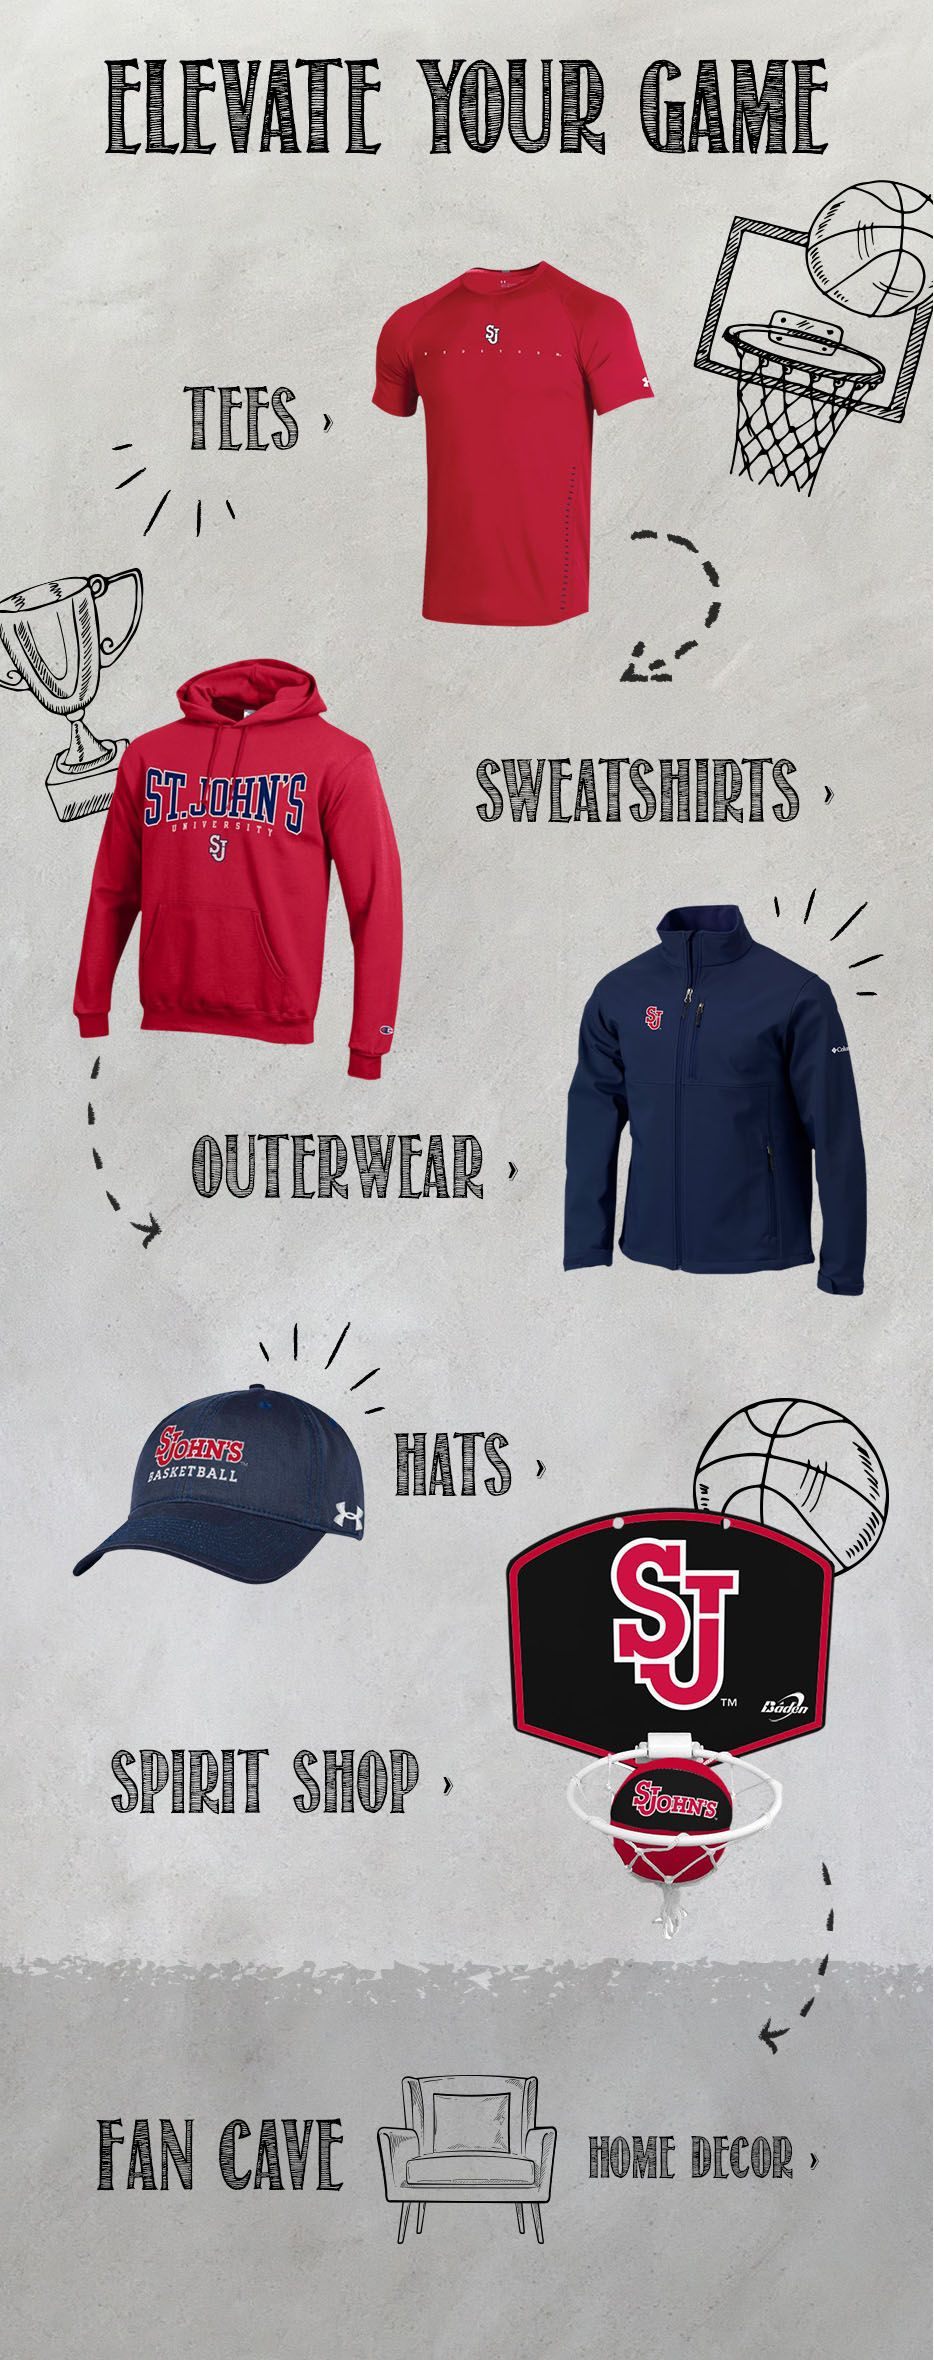 St Johns University Queens Campus Bookstore Apparel Merchandise